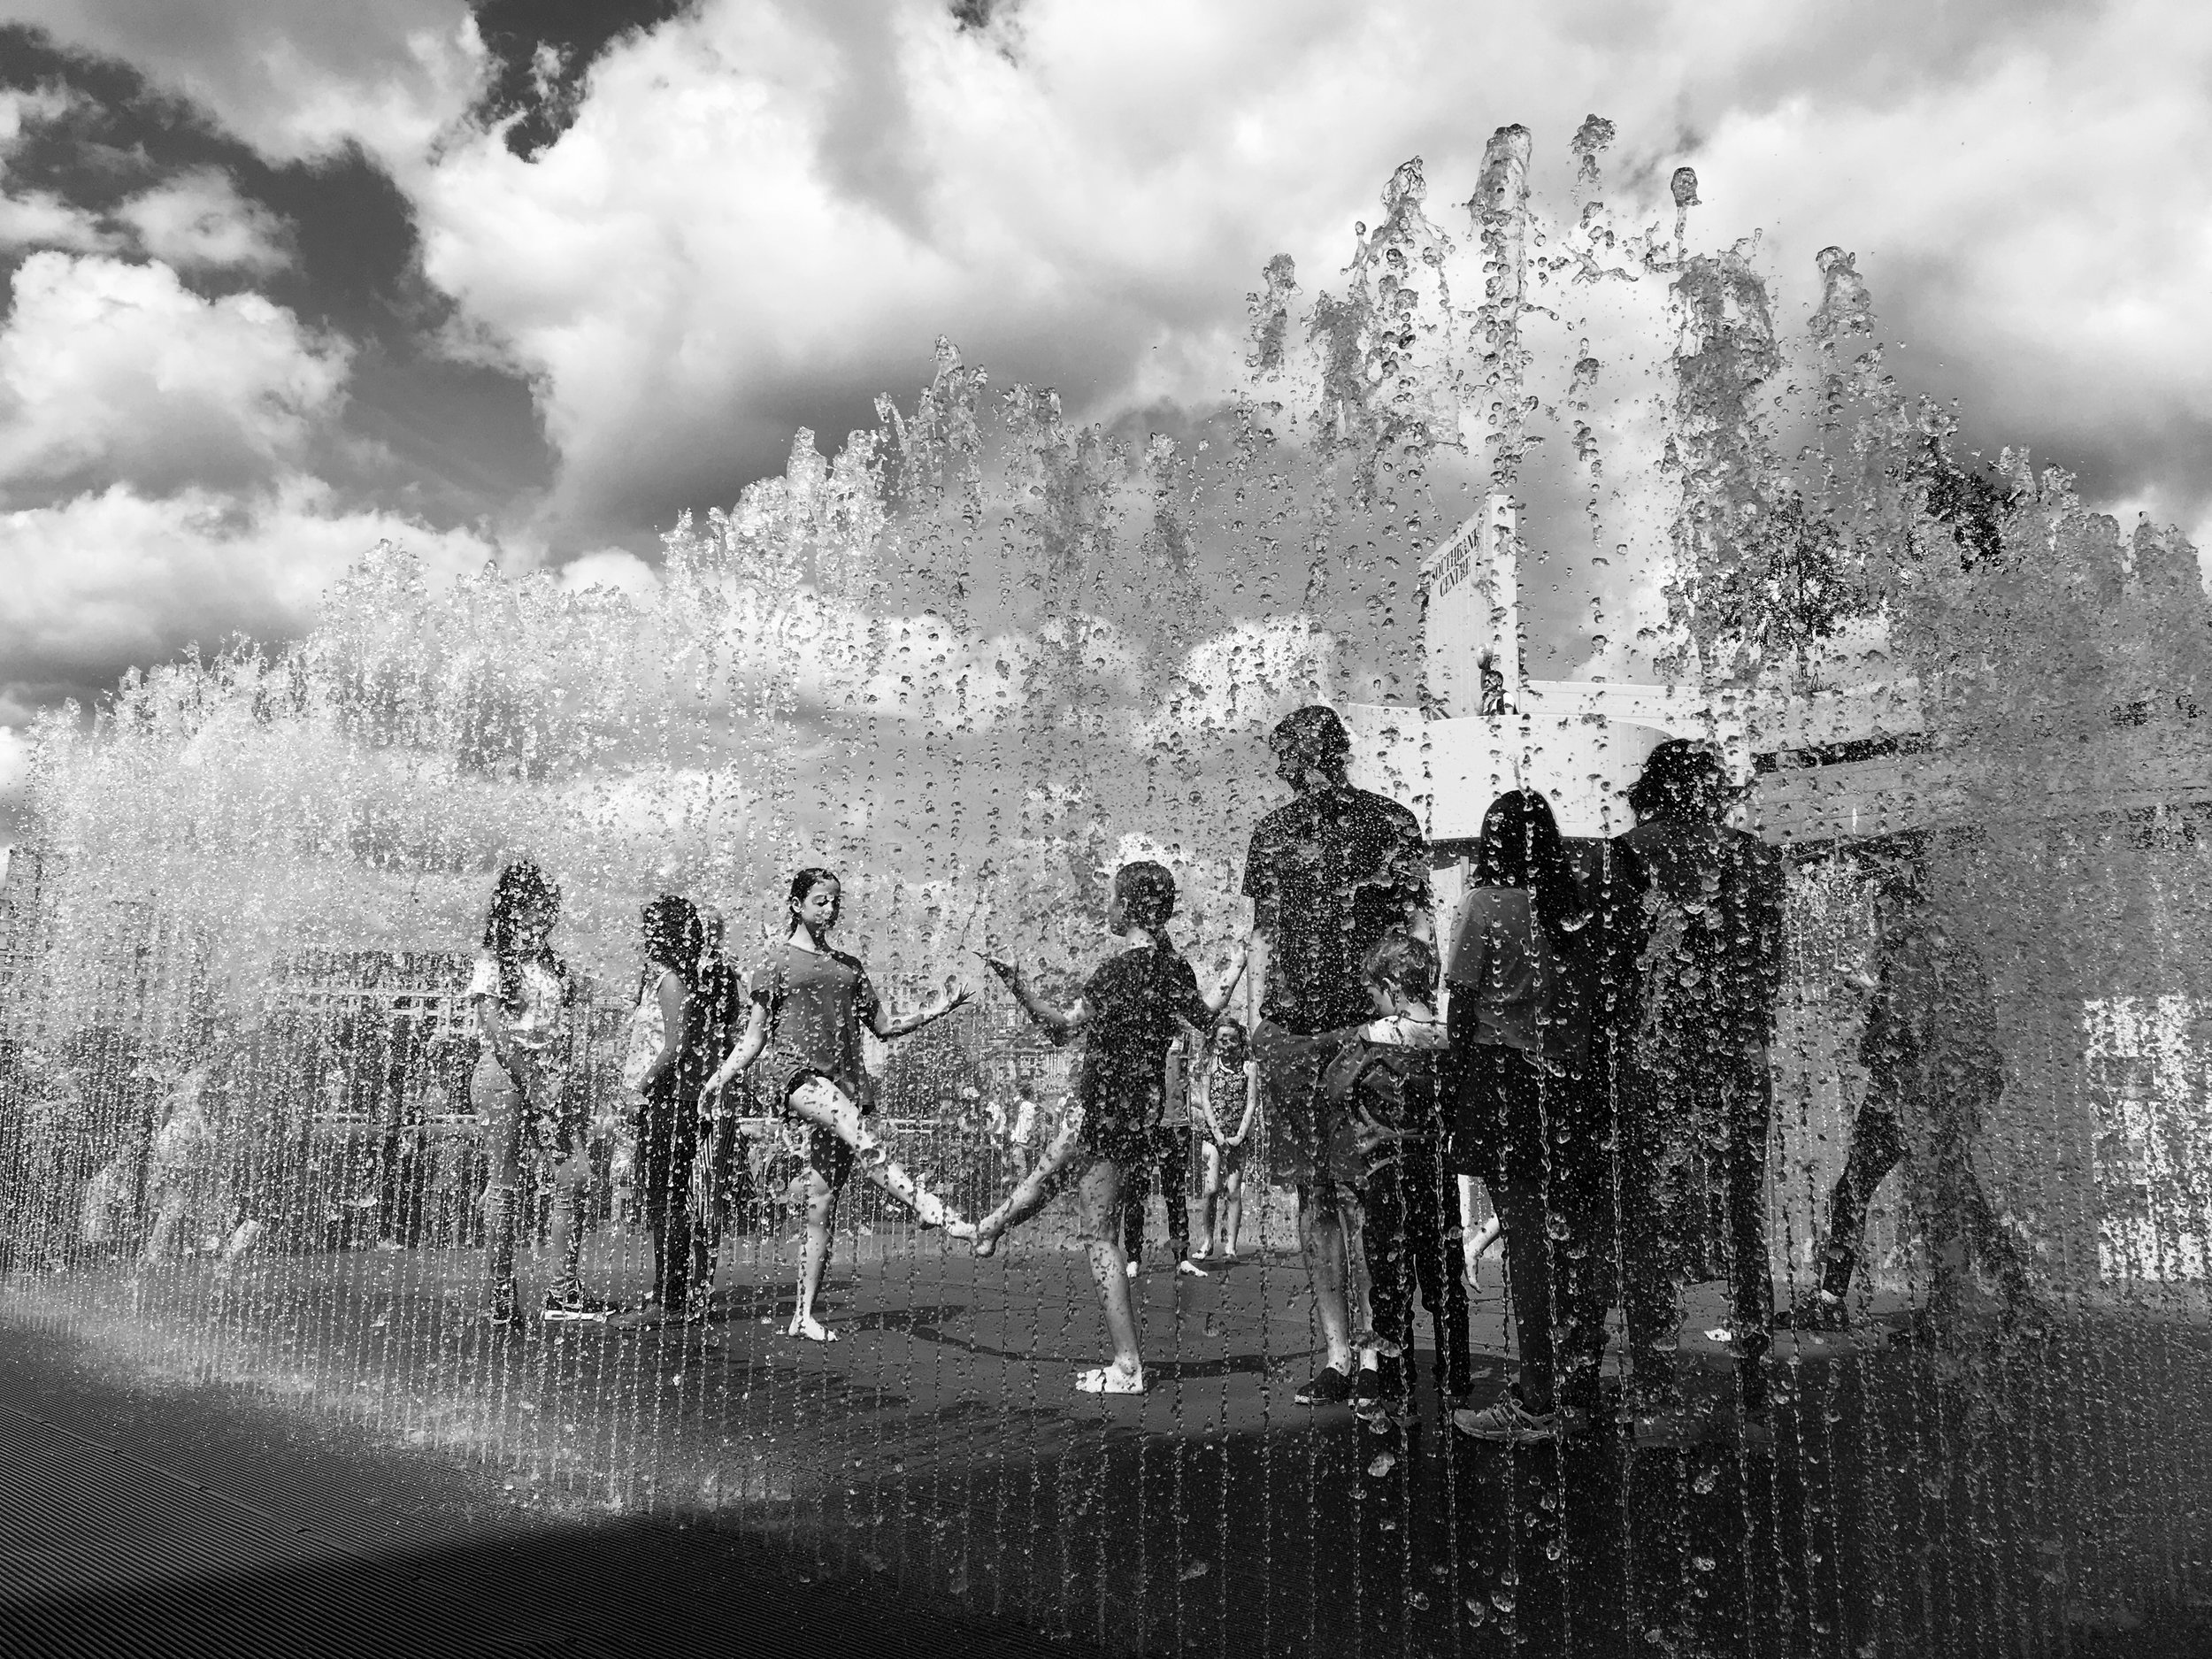 Disappearing Rooms (Jeppe Hein), South Bank, London, 2017.   (c) B Yeoh